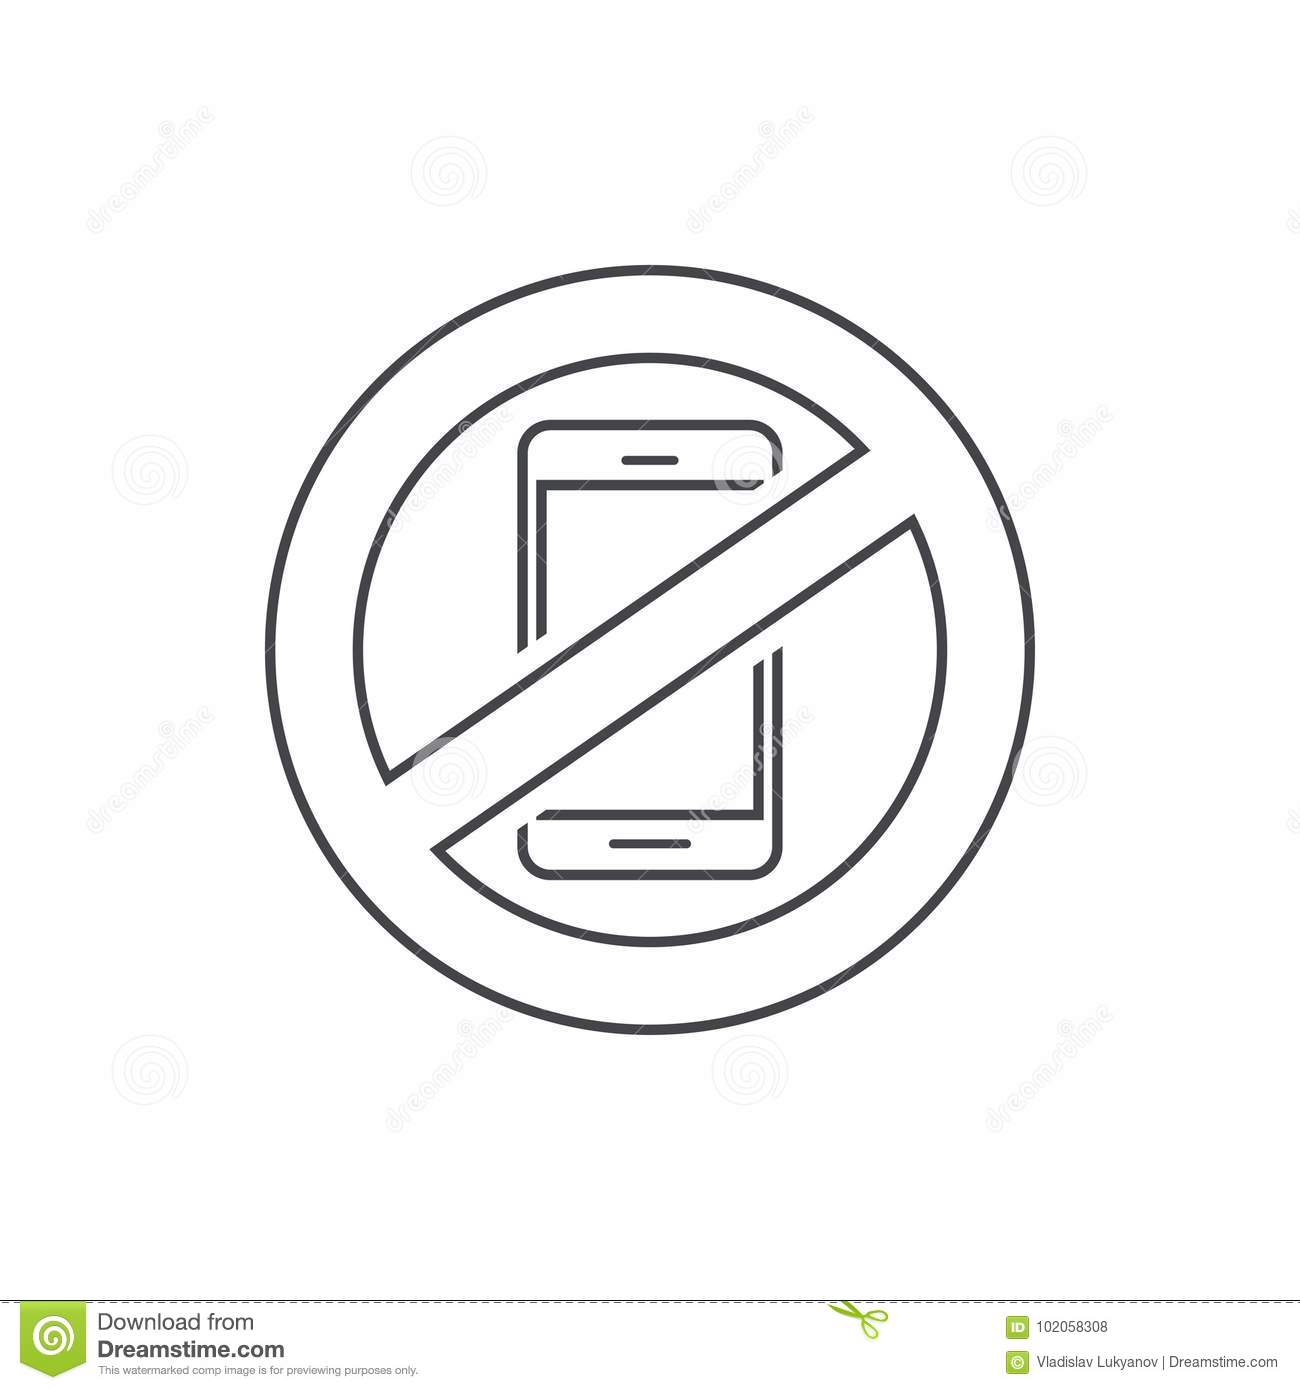 how to stop using phone